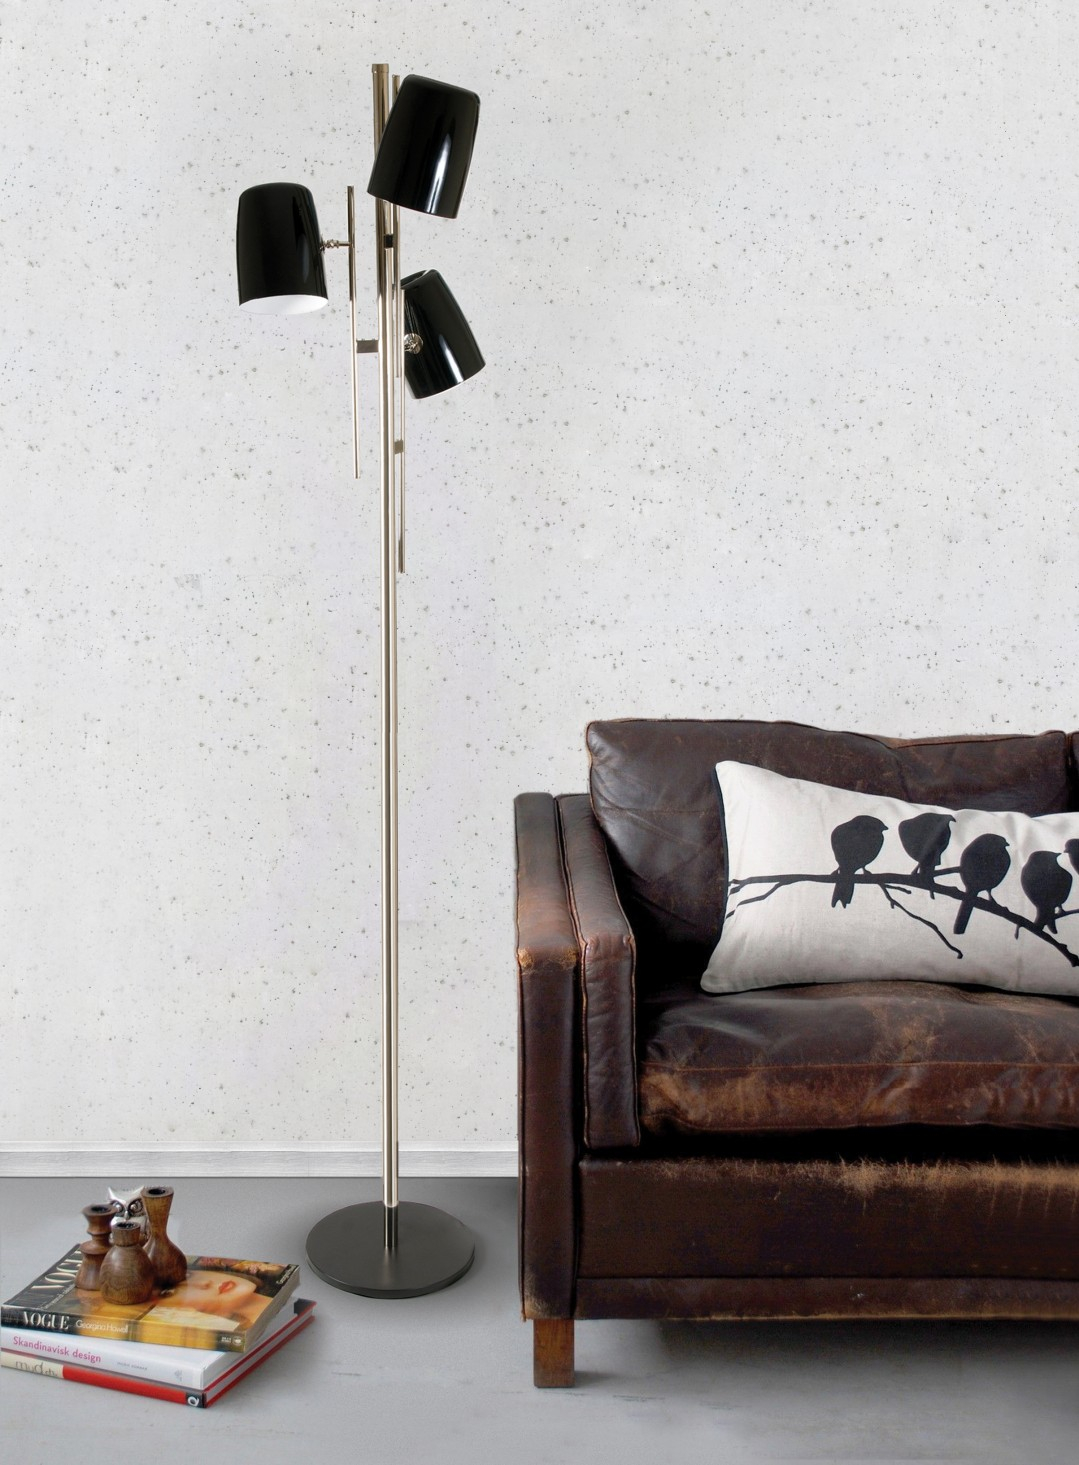 COLE FLOOR LAMP cole floor lamp Celebrate The Legacy Of Nat King Cole With Cole Floor Lamp! Celebrate The Legacy Of Nat King Cole With Modern Floor Lamps2